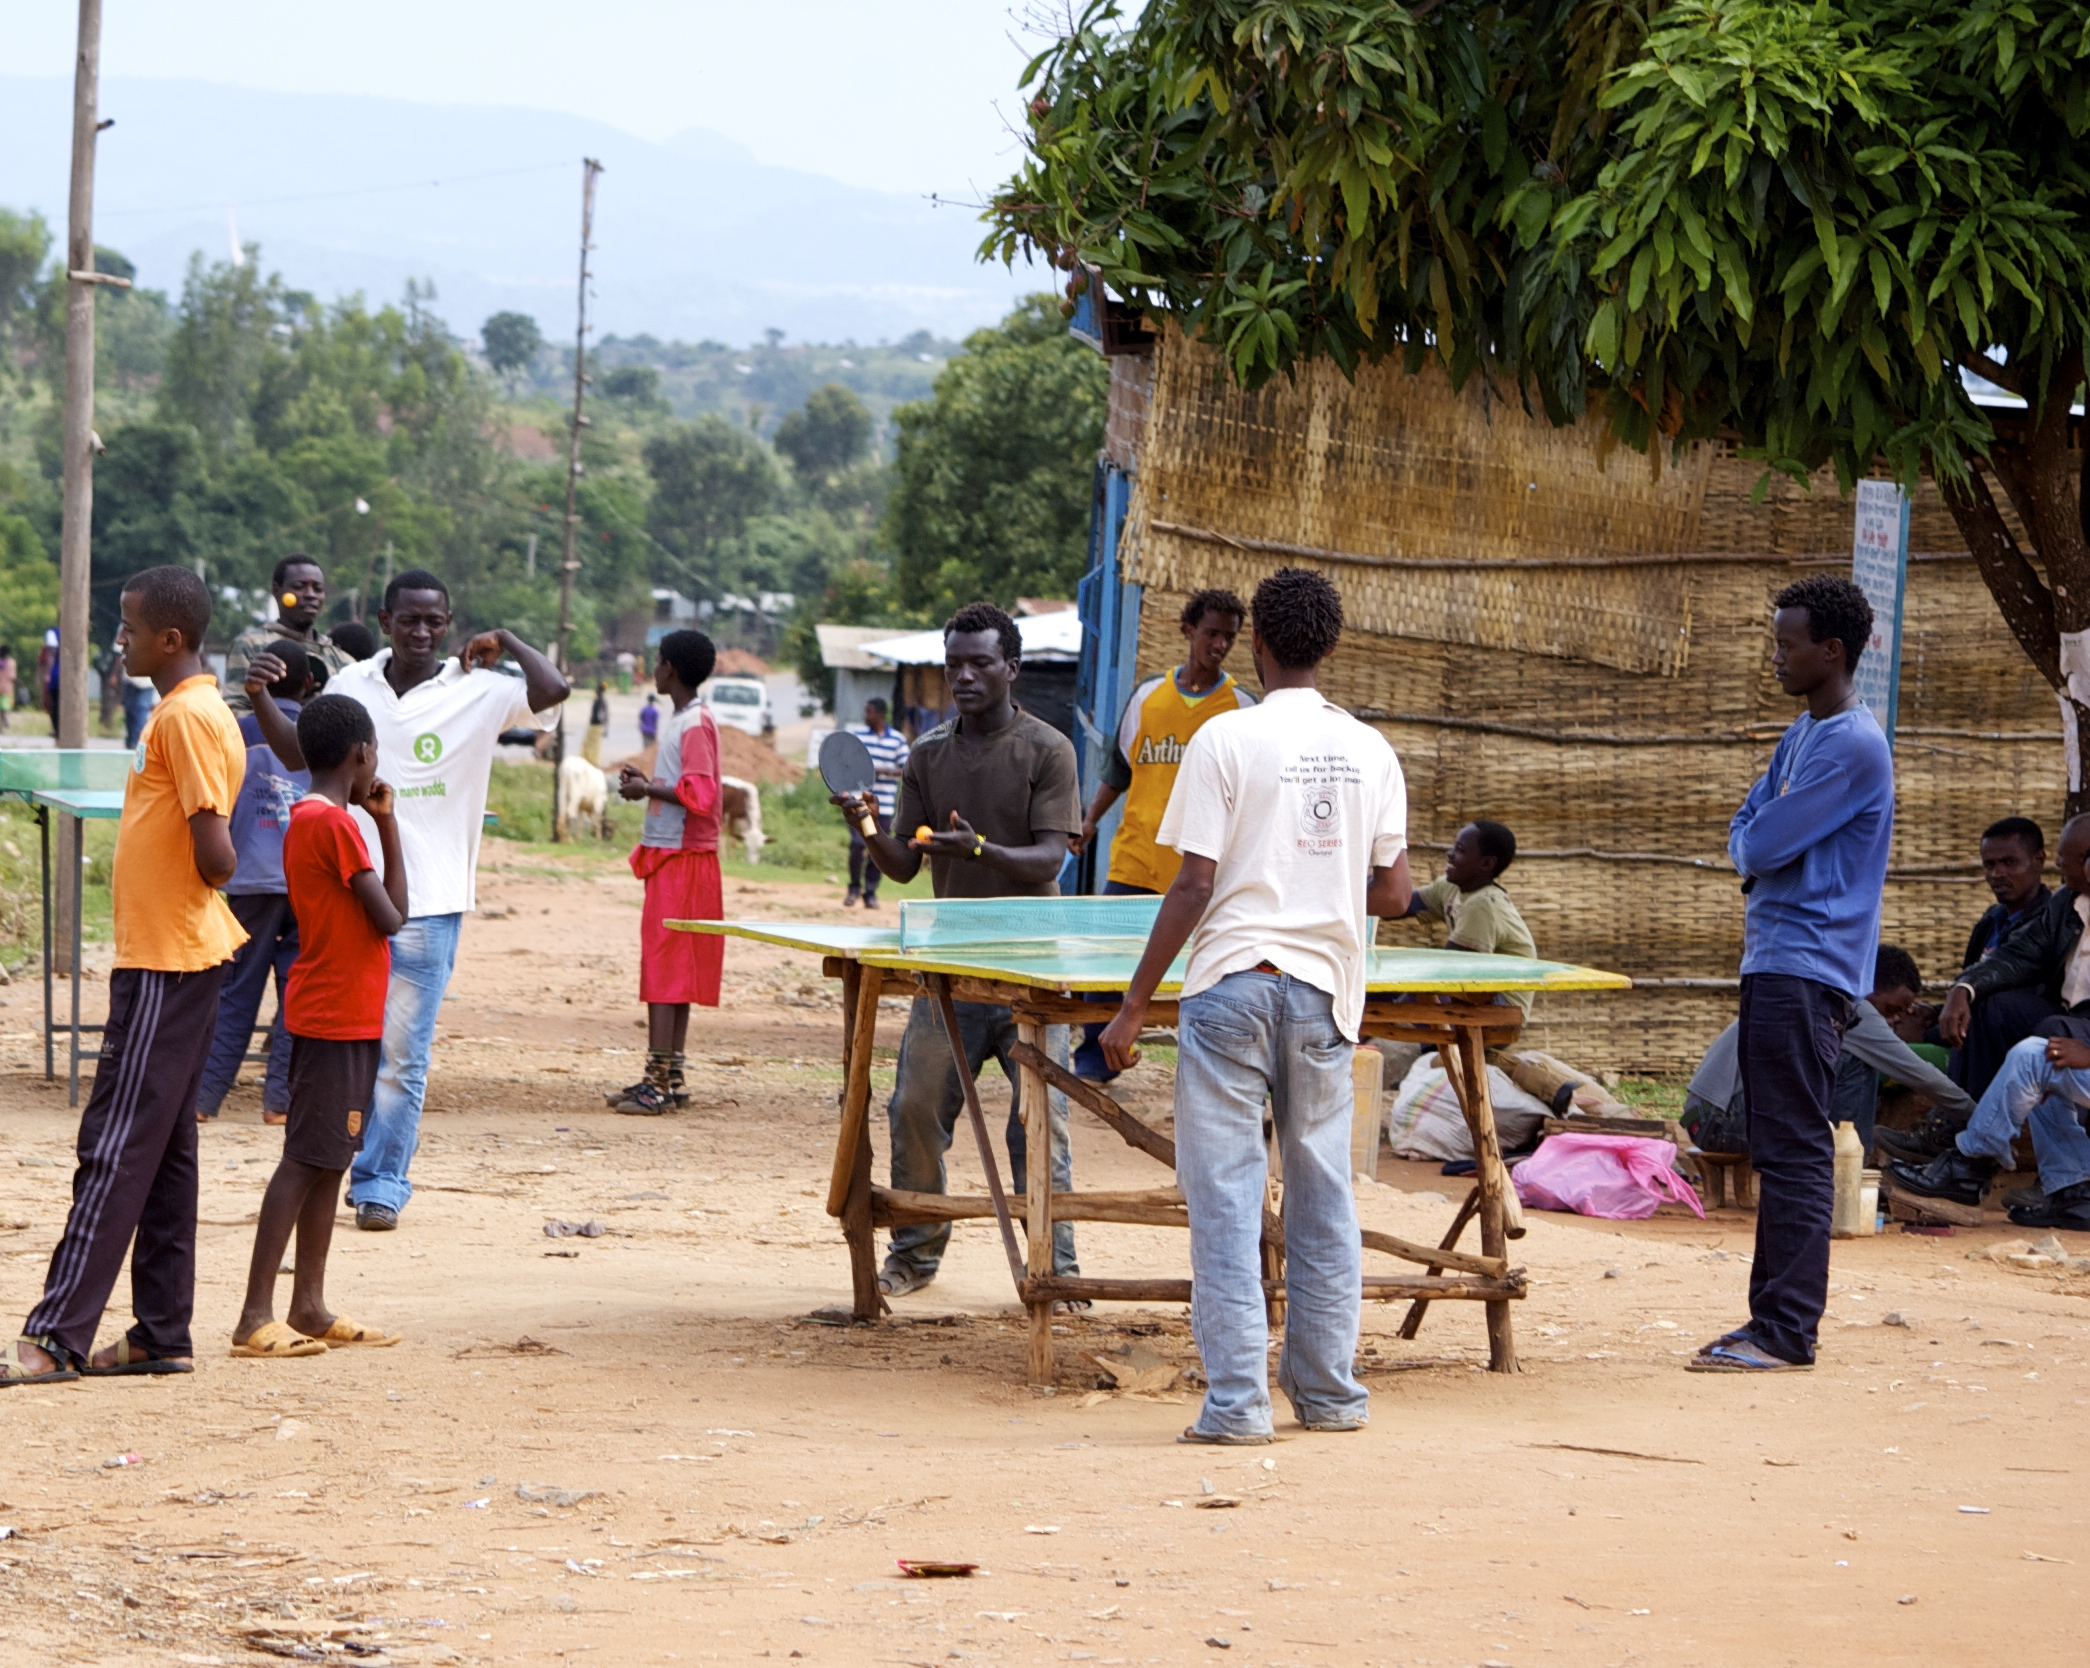 Ping Pong in Ethiopia